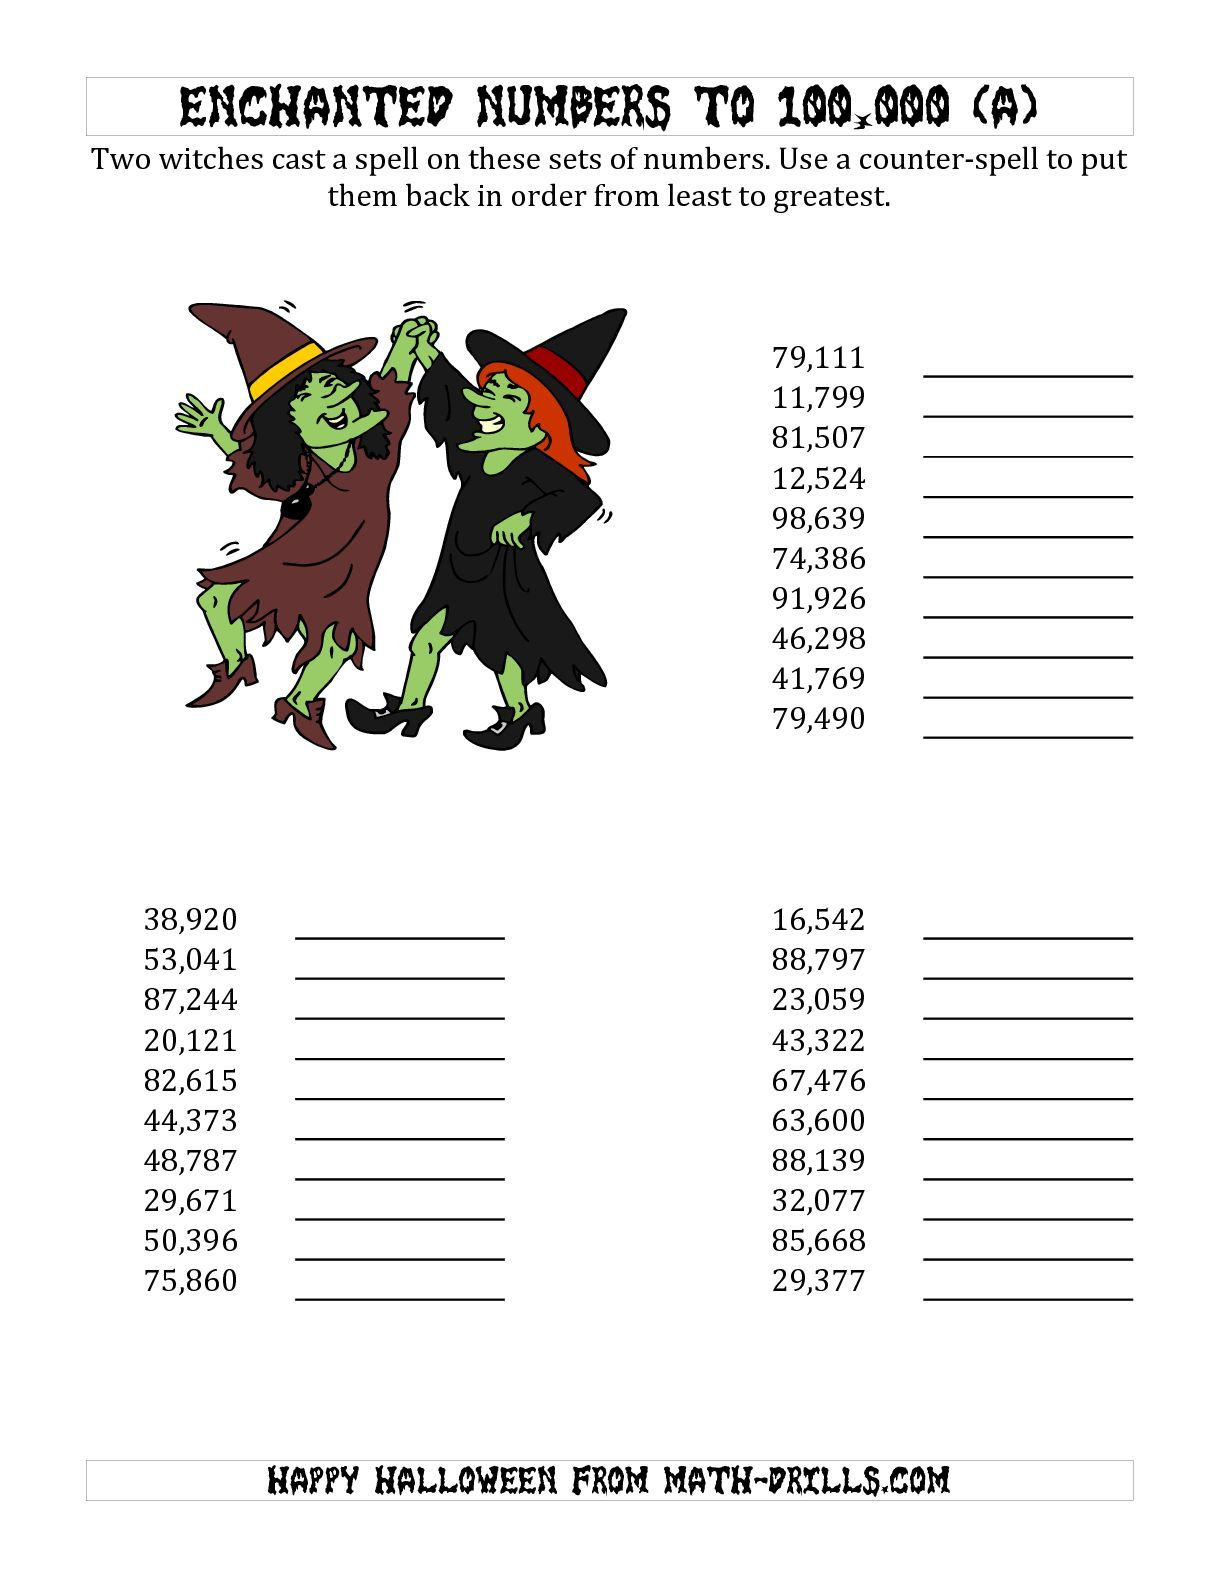 The Ordering Halloween Witches Enchanted Numbers To